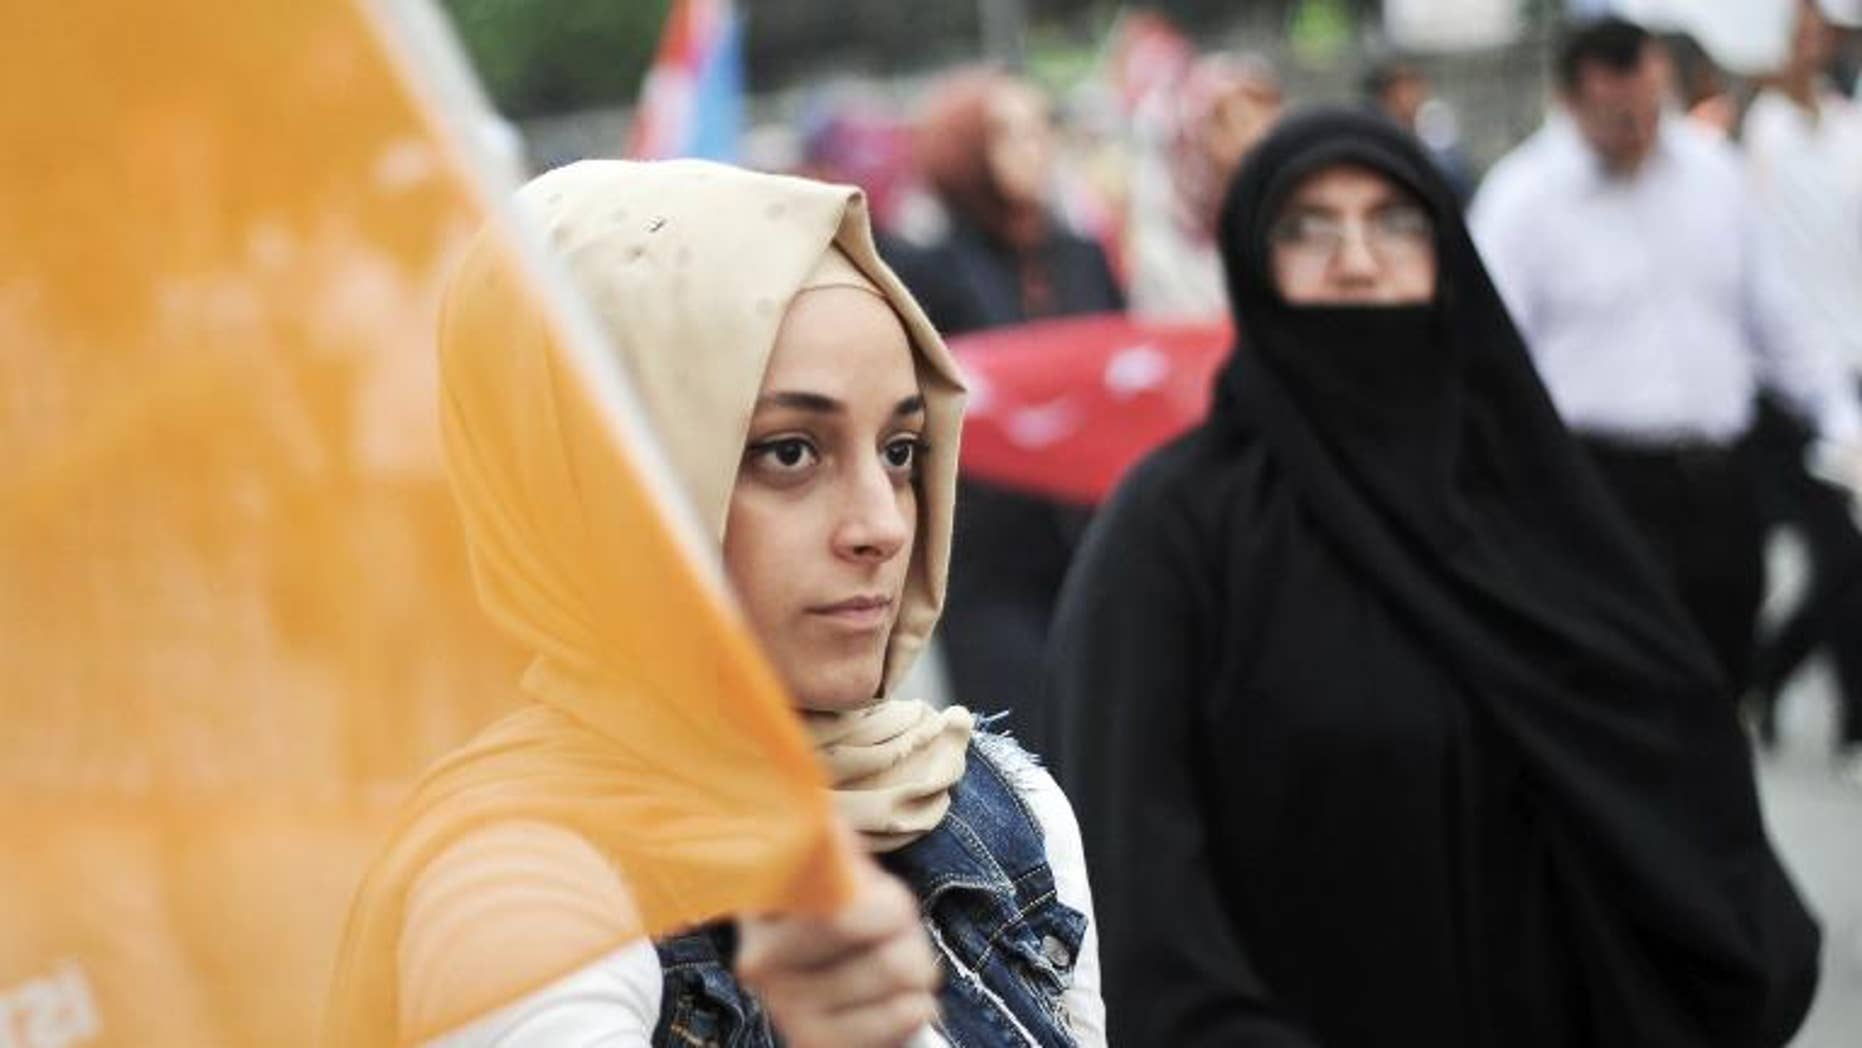 A supporter of Turkish Prime Minister Recep Tayyip Erdogan holds an AKP 'Justice and Development' party flag during a rally in Istanbul on June 16, 2013